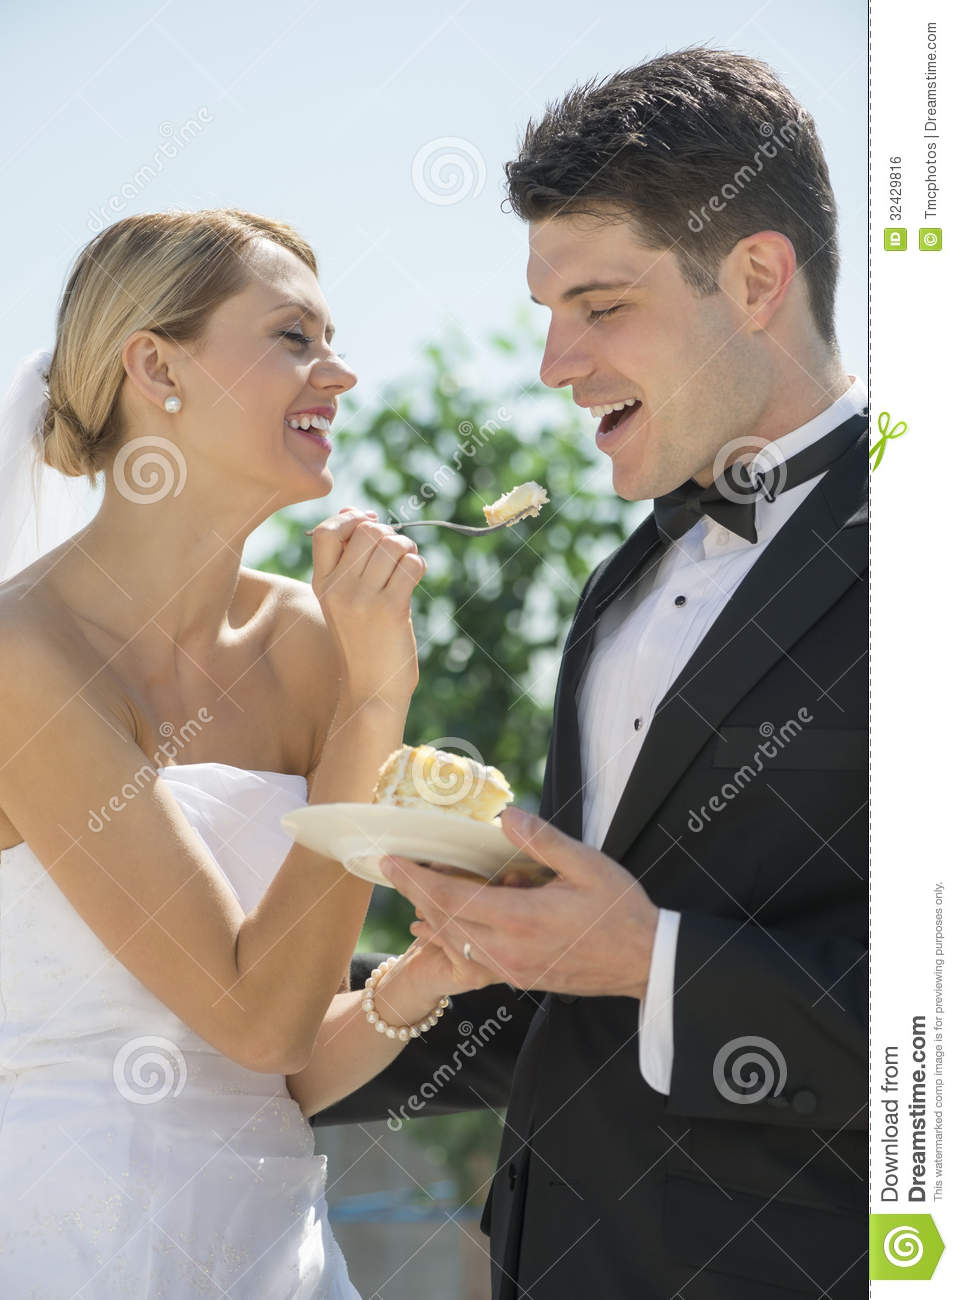 Young Happy Smiling African American Black Teen Girl With: Bride Feeding Wedding Cake To Groom Stock Photo